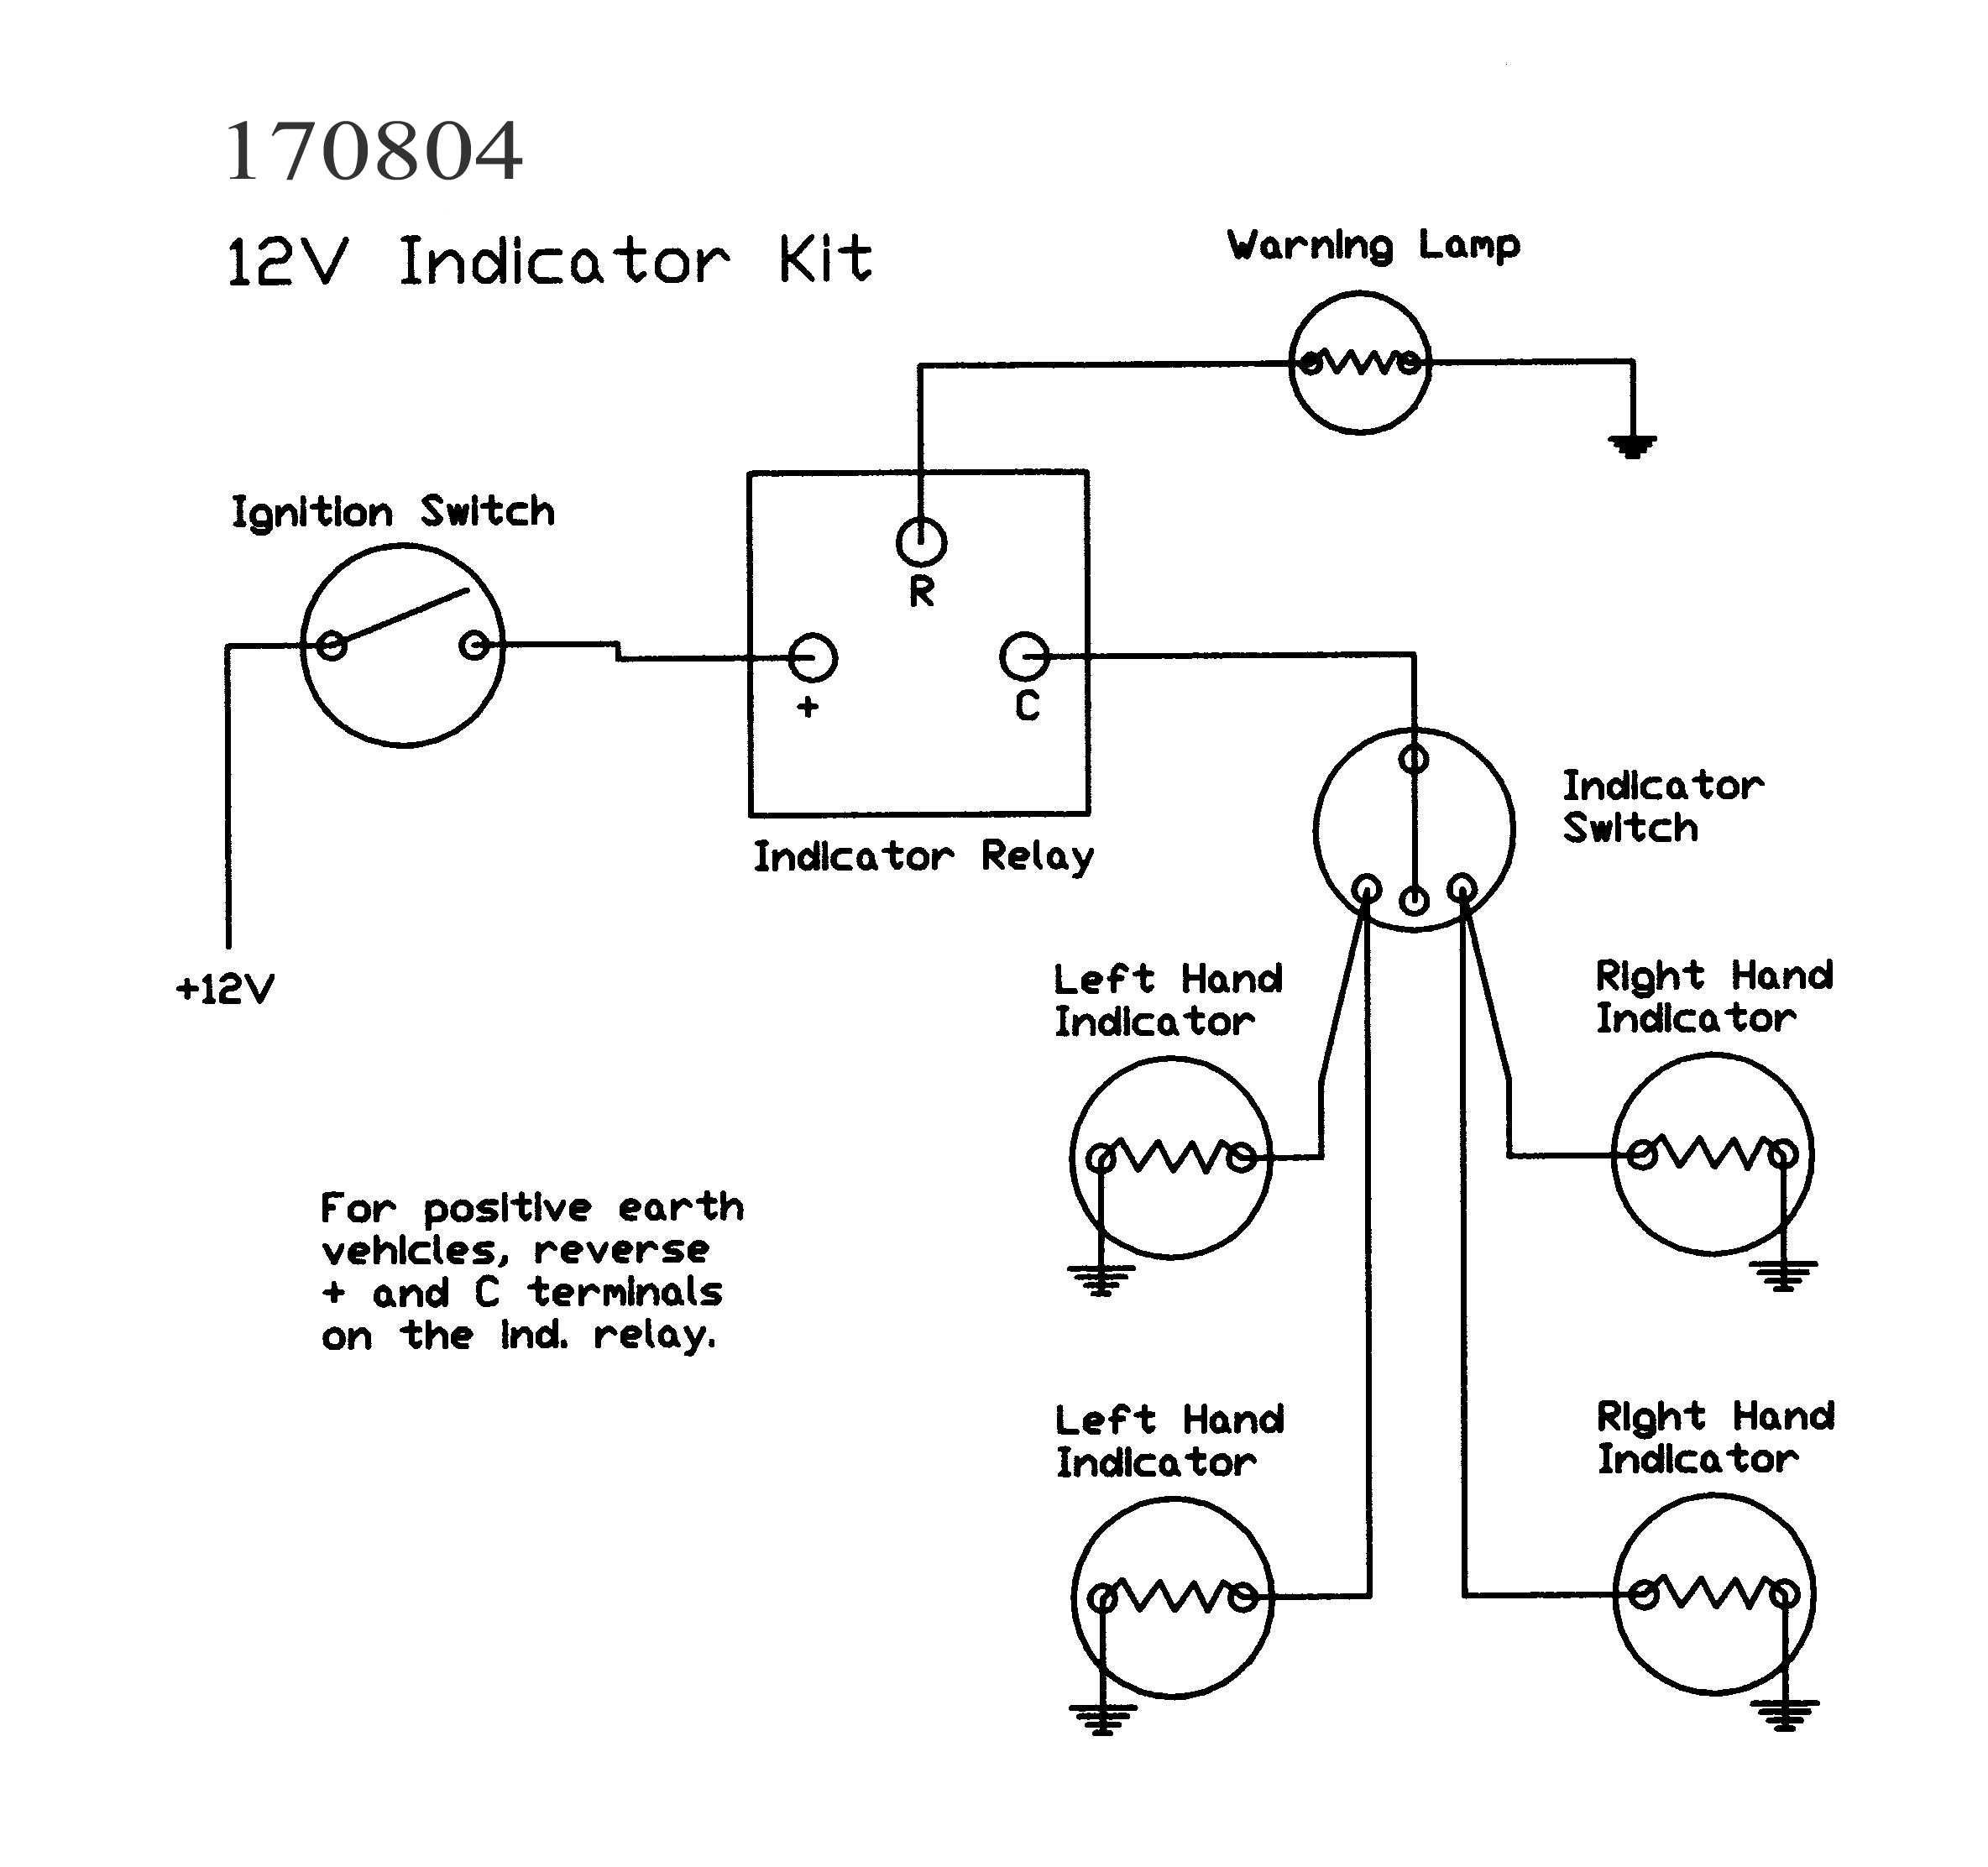 170804_(12v)_schematic indicator kits (without lamps) motorcycle indicator wiring diagram at gsmx.co